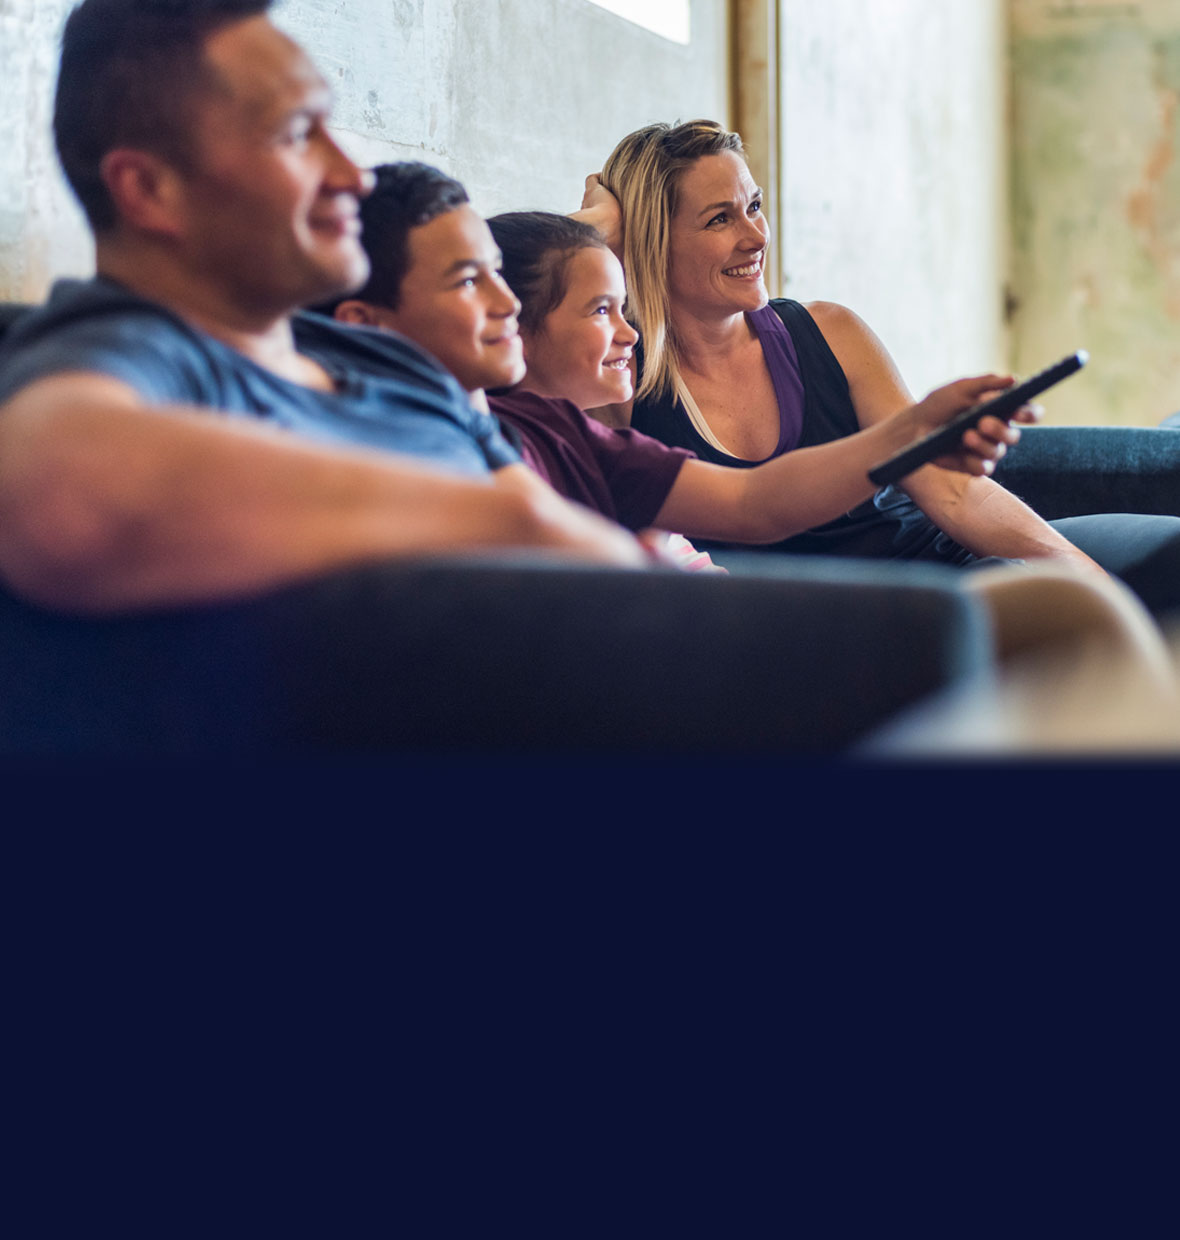 Family watching TV on couch